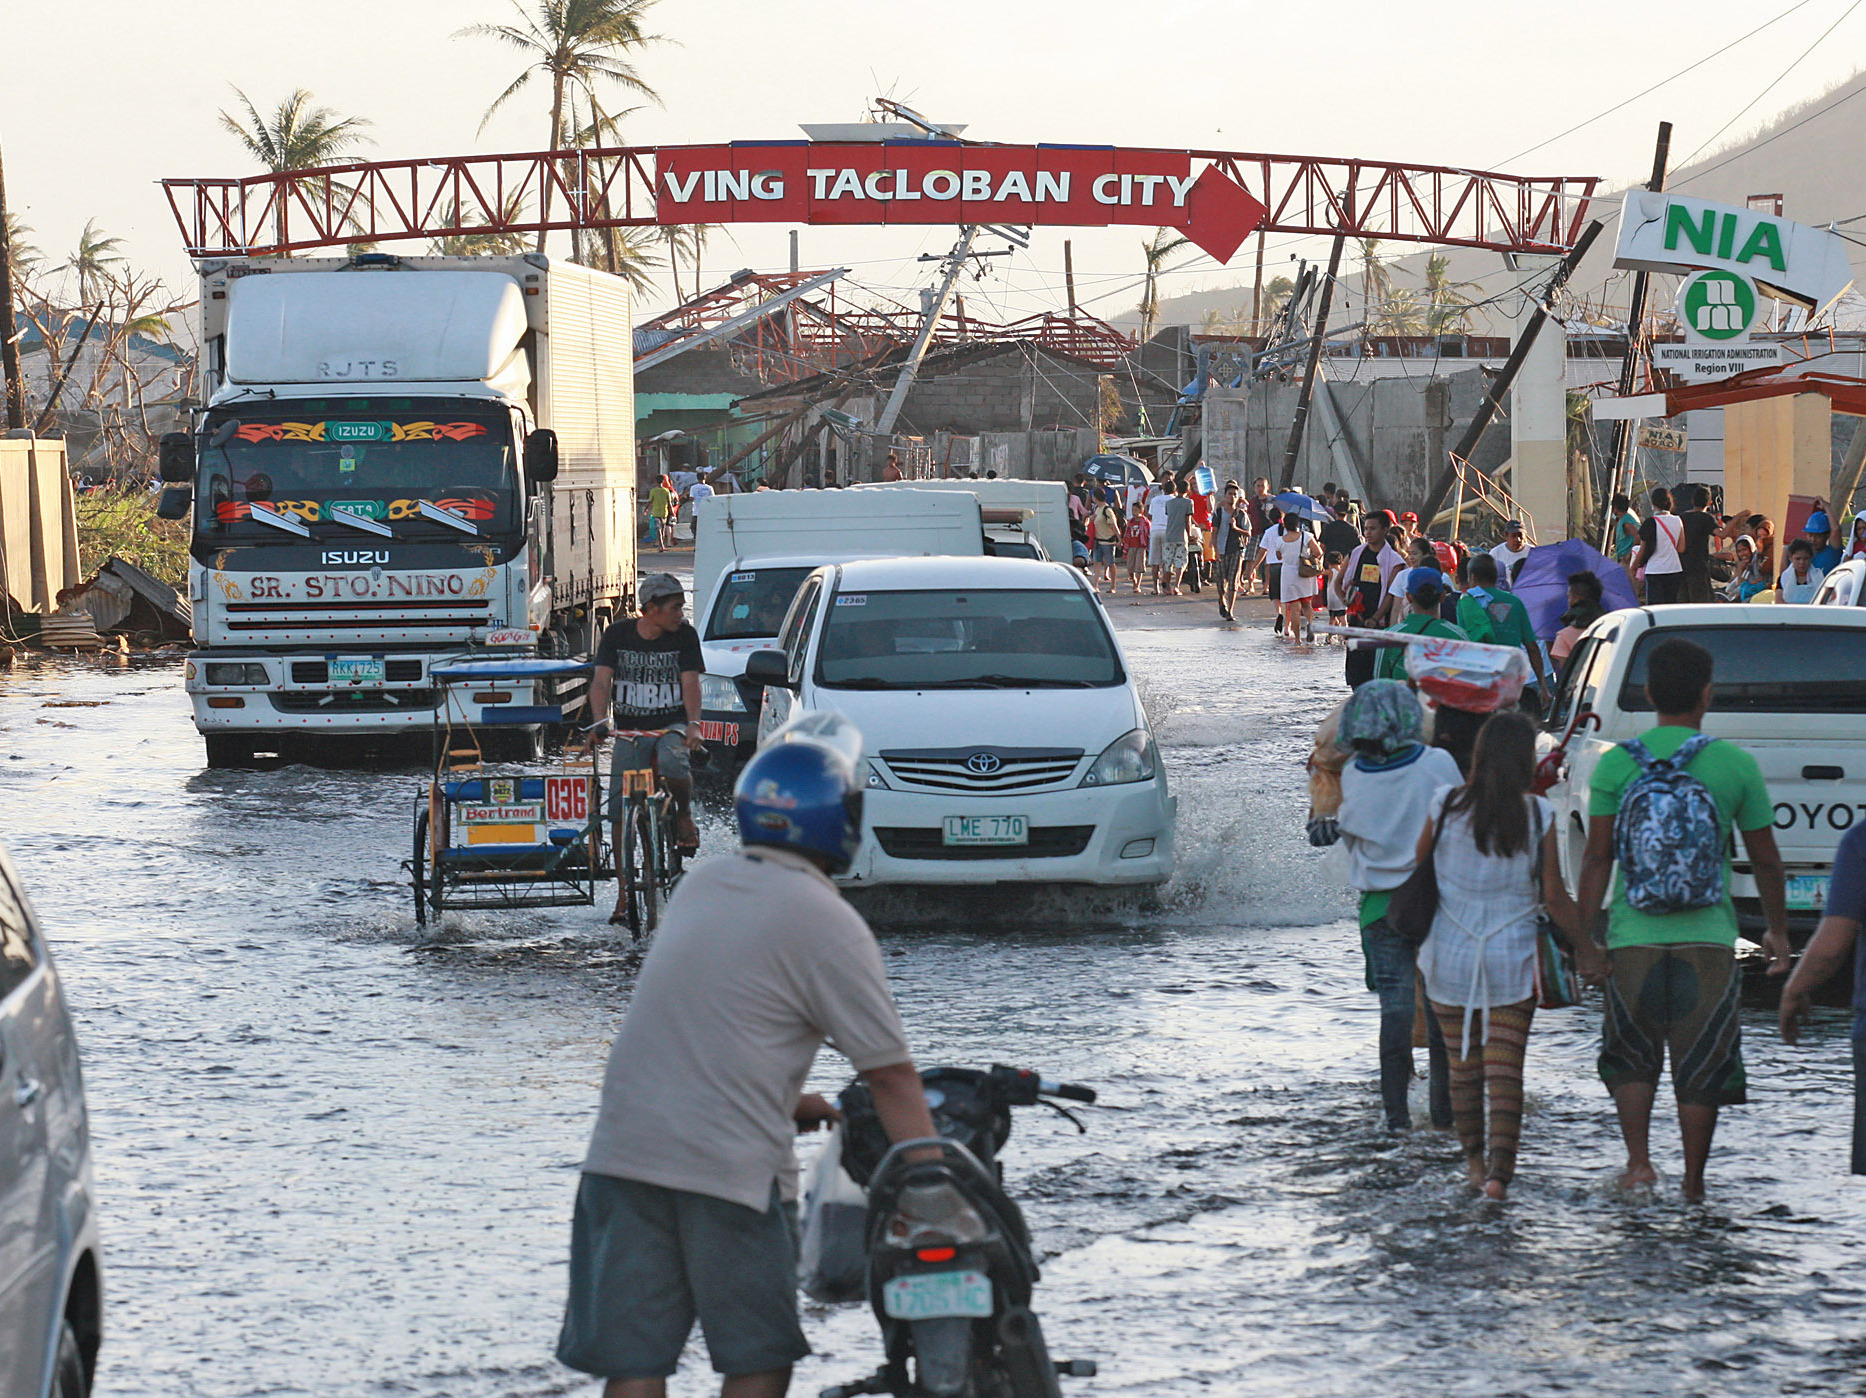 Storm Surge And Low-Lying Philippines Made A Deadly Combination